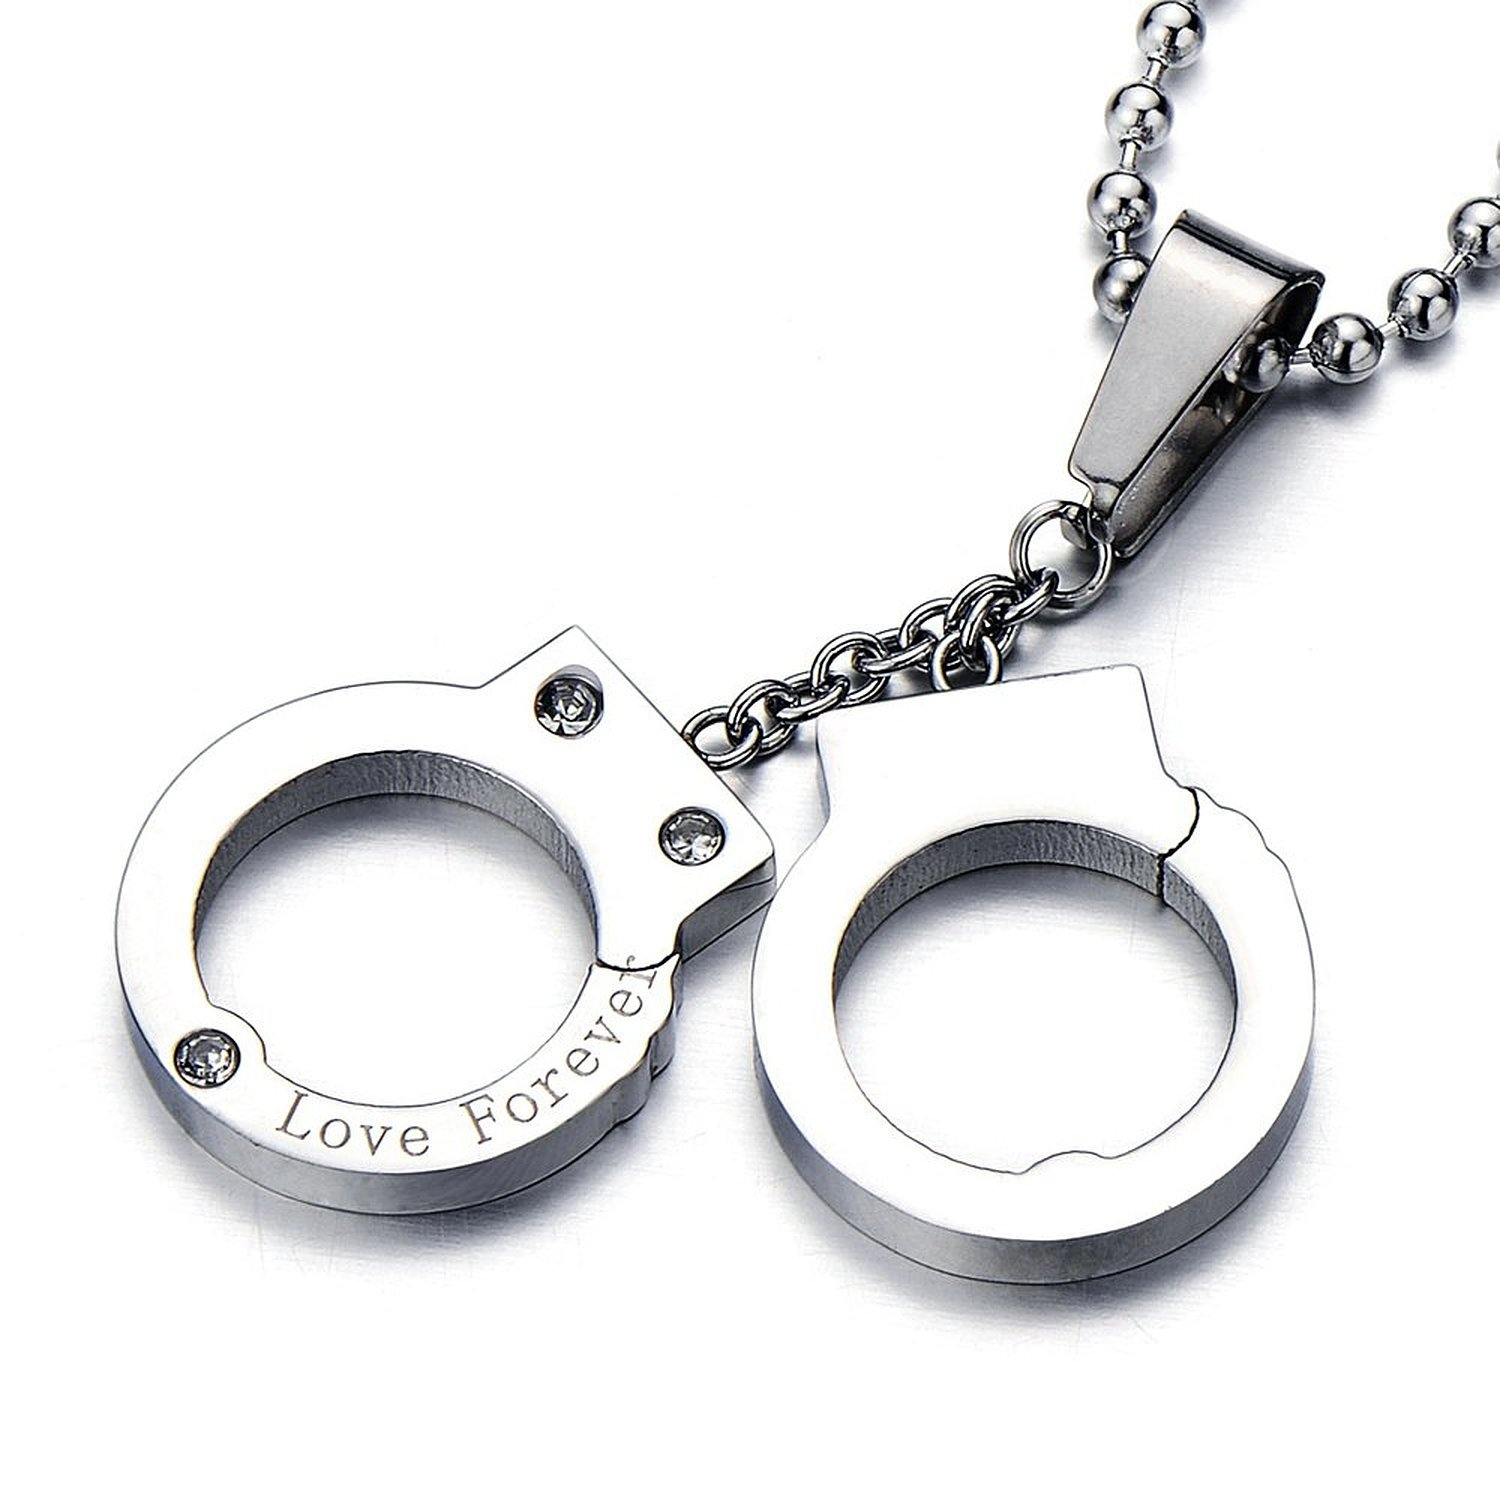 Woman/'s Biker Stainless Steel Large Handcuffs Necklace USA Seller!